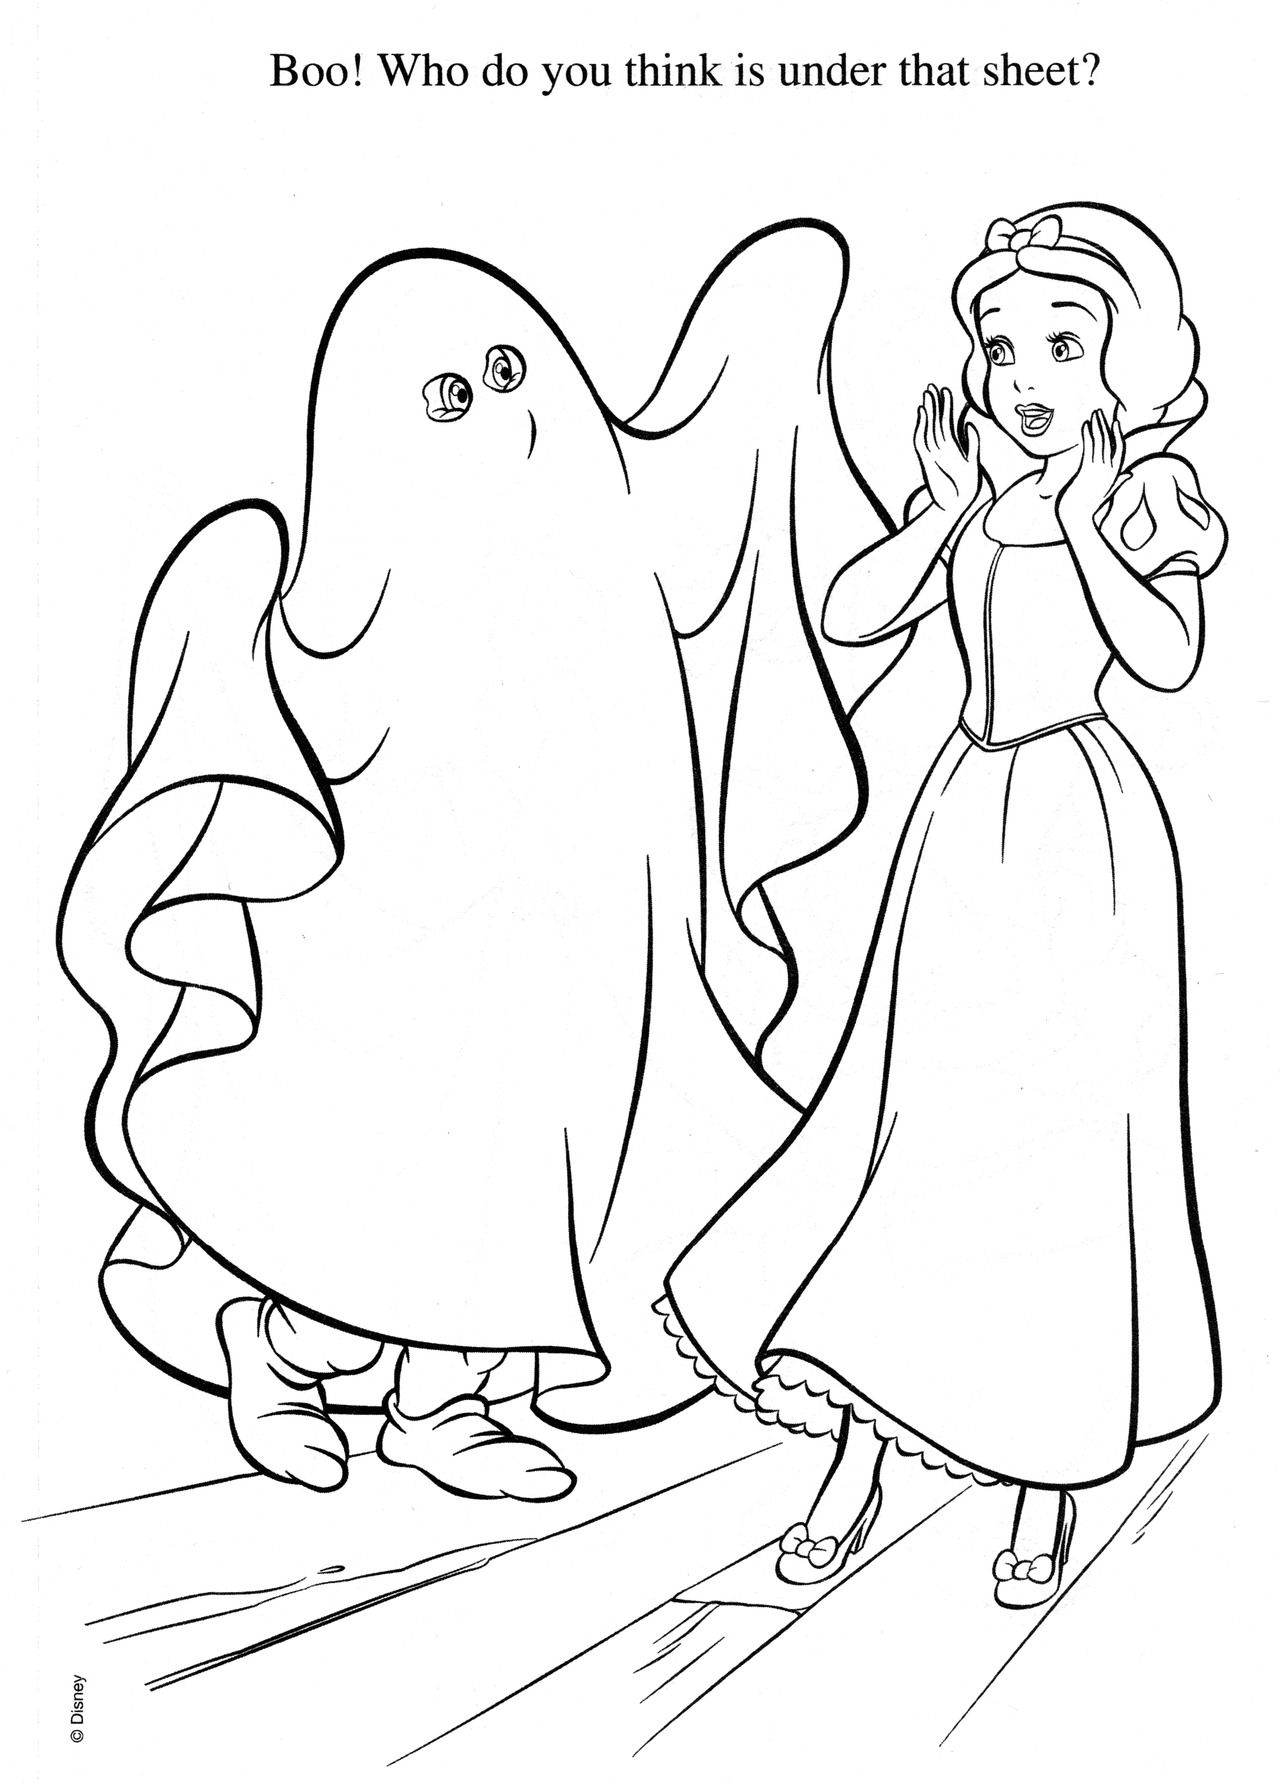 Currently On Hiatus Not Sure When Coming Back Sorry All Halloween Coloring PagesDisney PagesAll MoviesDisney HalloweenLes